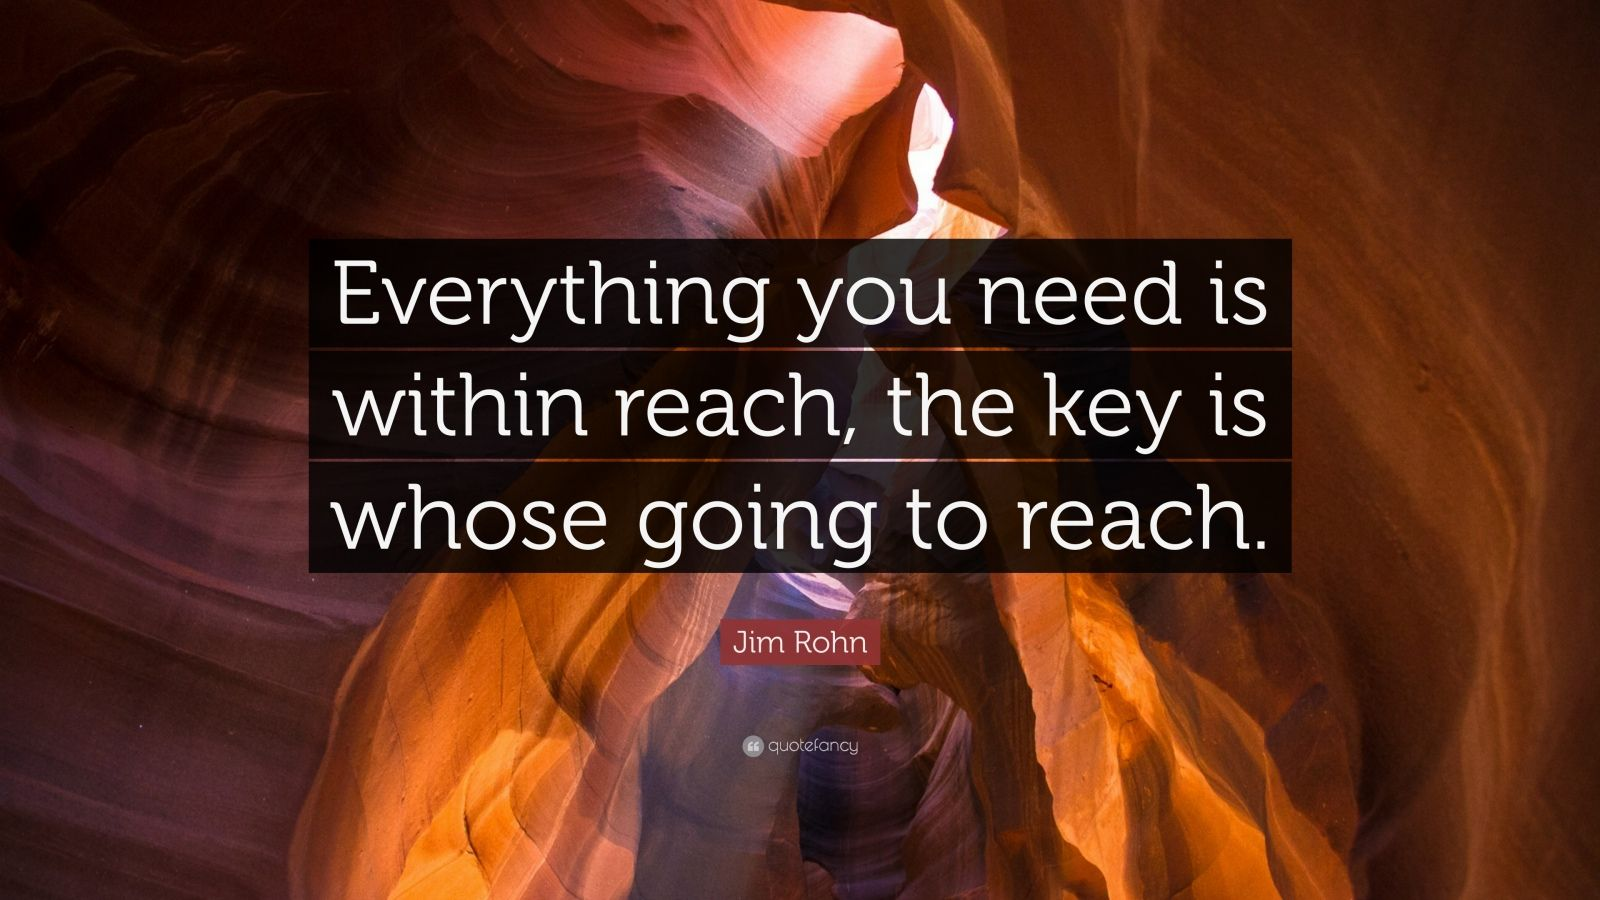 """Jim Rohn Quote: """"Everything you need is within reach, the key is whose going to reach."""""""